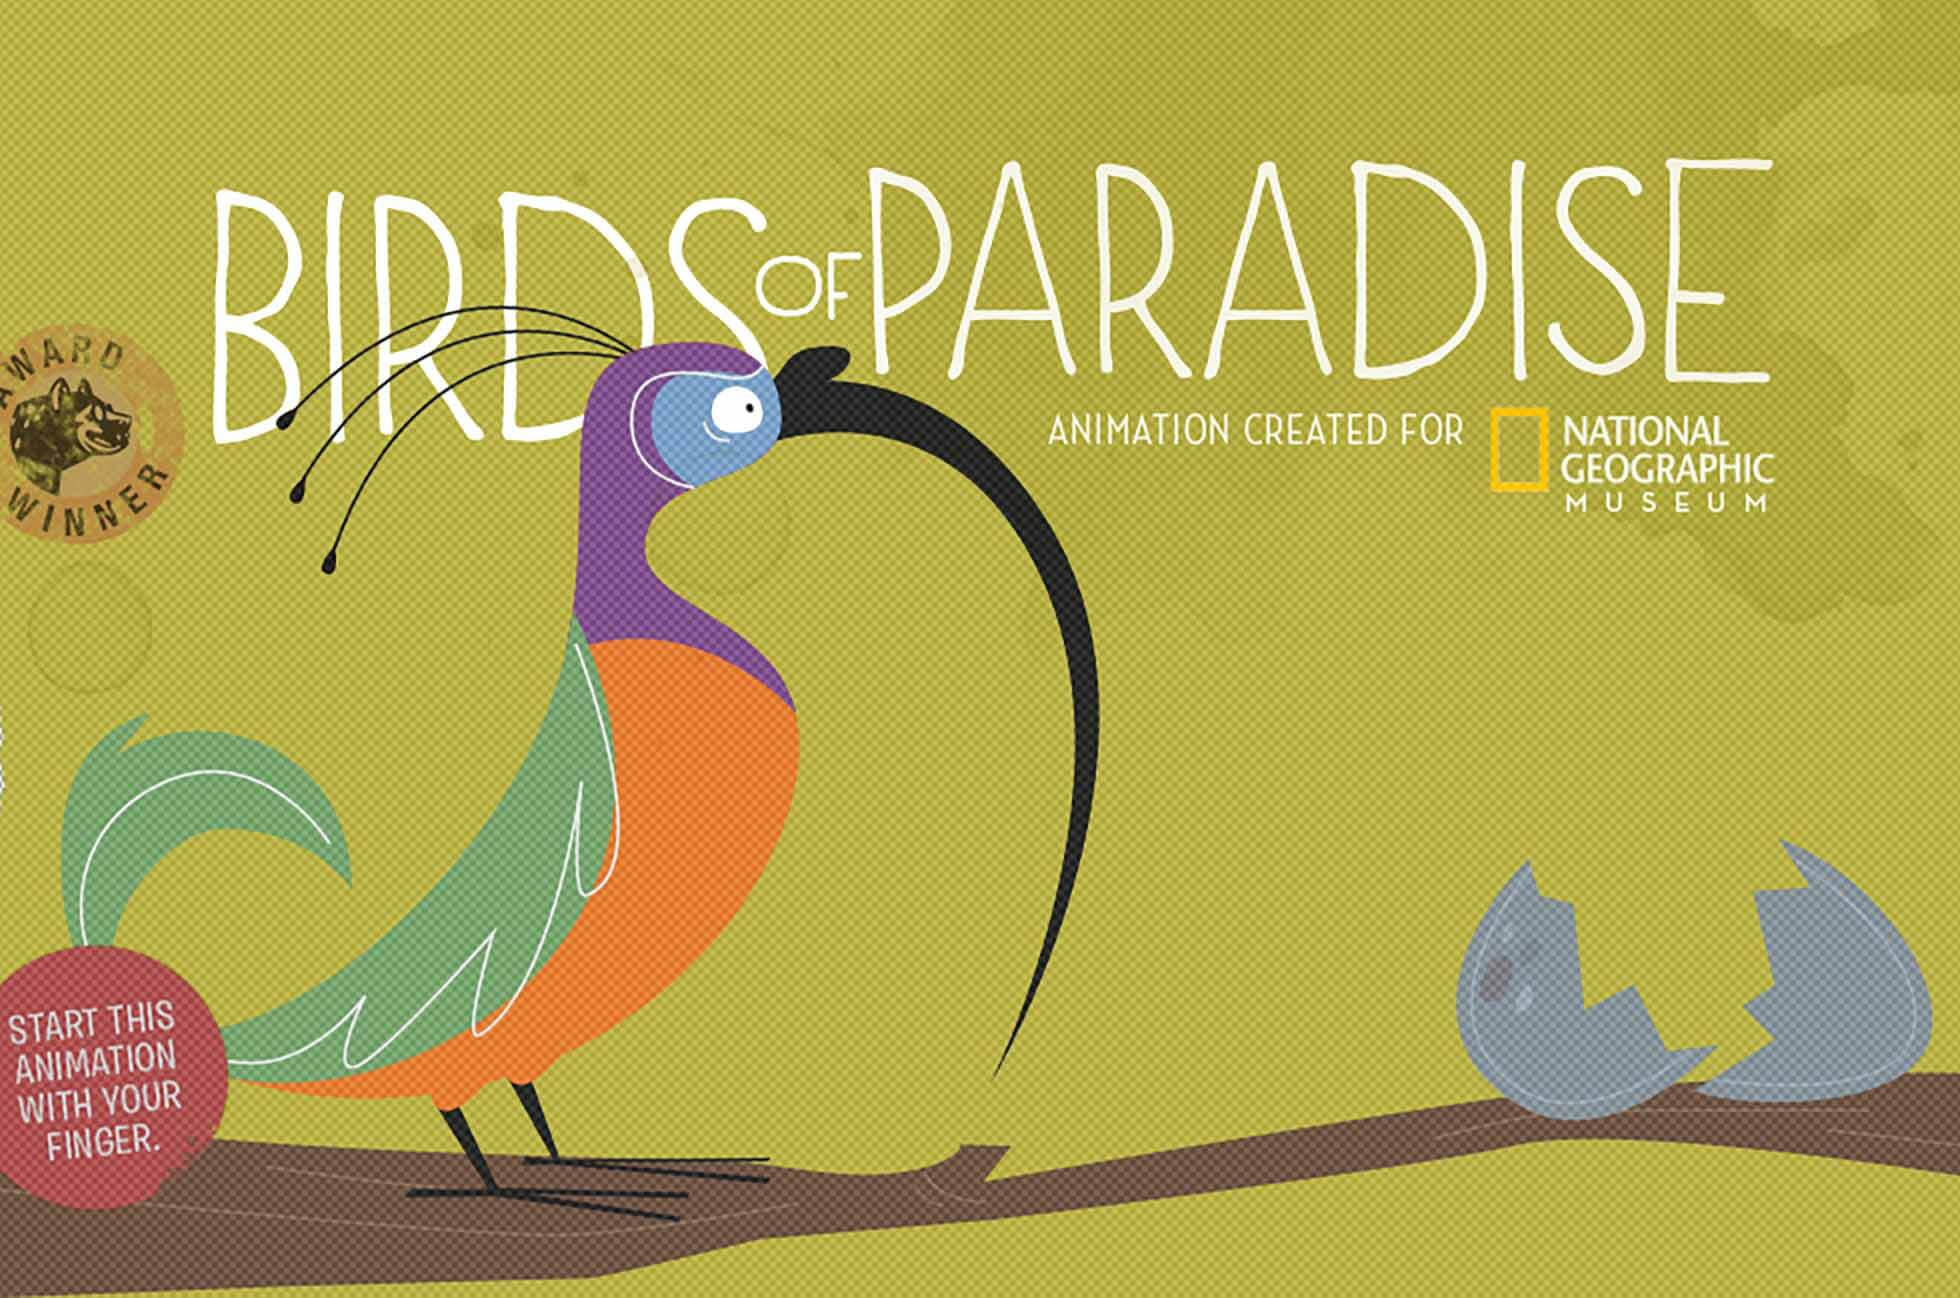 Birds of Paradise animation created for National Geographic Musuem. Start this animation with your finger.